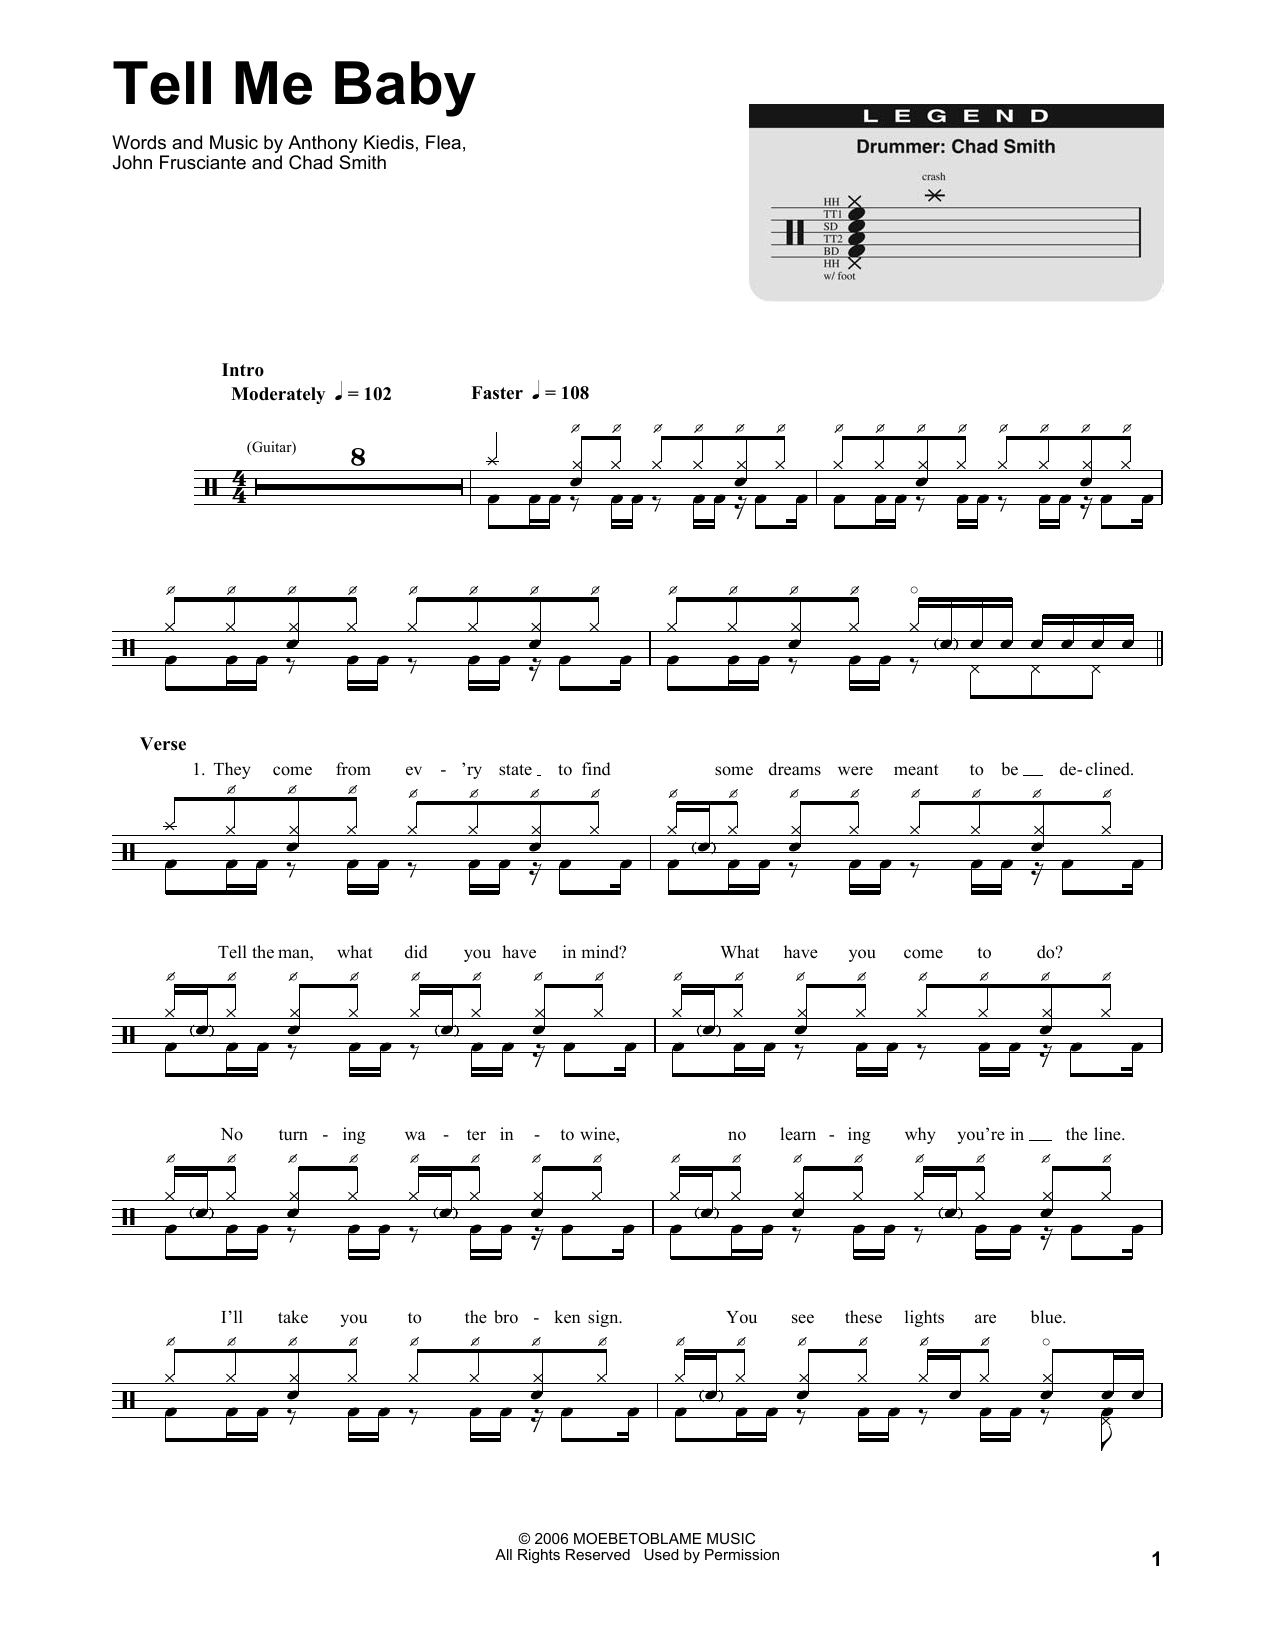 Sheet Music Digital Files To Print - Licensed Red Hot Chili